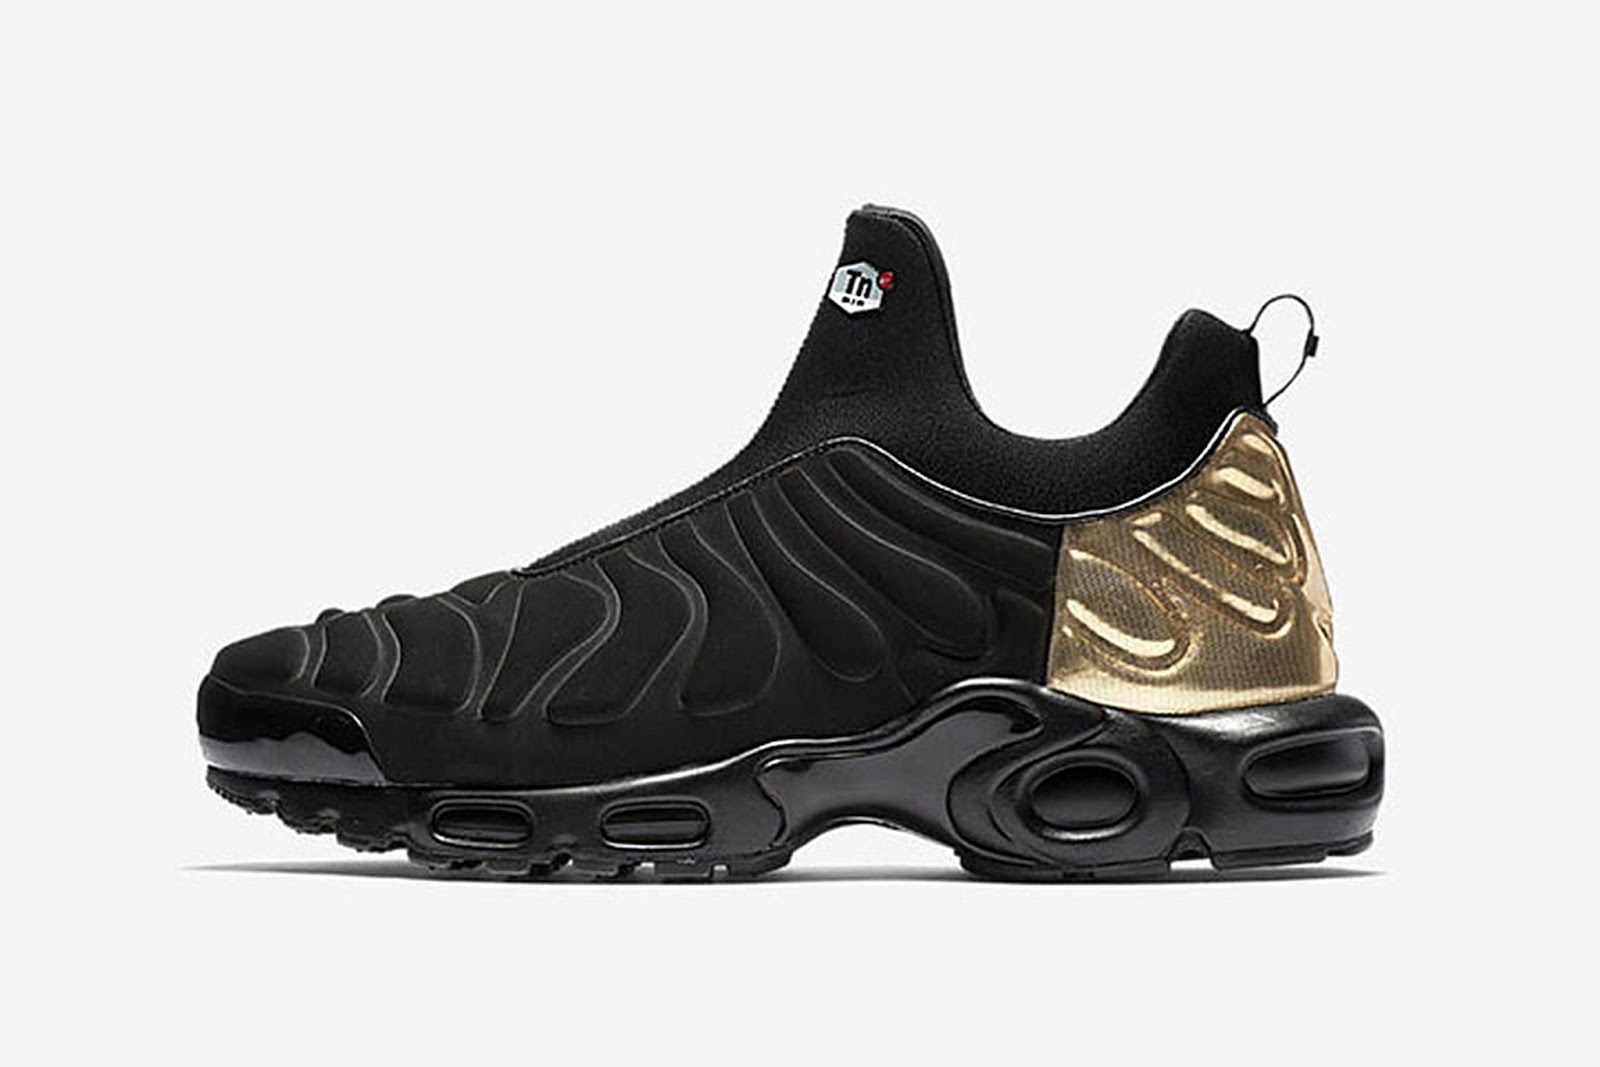 805586c133 The second colourway of the Nike Air Max Plus comes dressed in a Midnight  Navy, Metallic Silver and Light Ash Grey colour scheme. The laceless  silhouette is ...